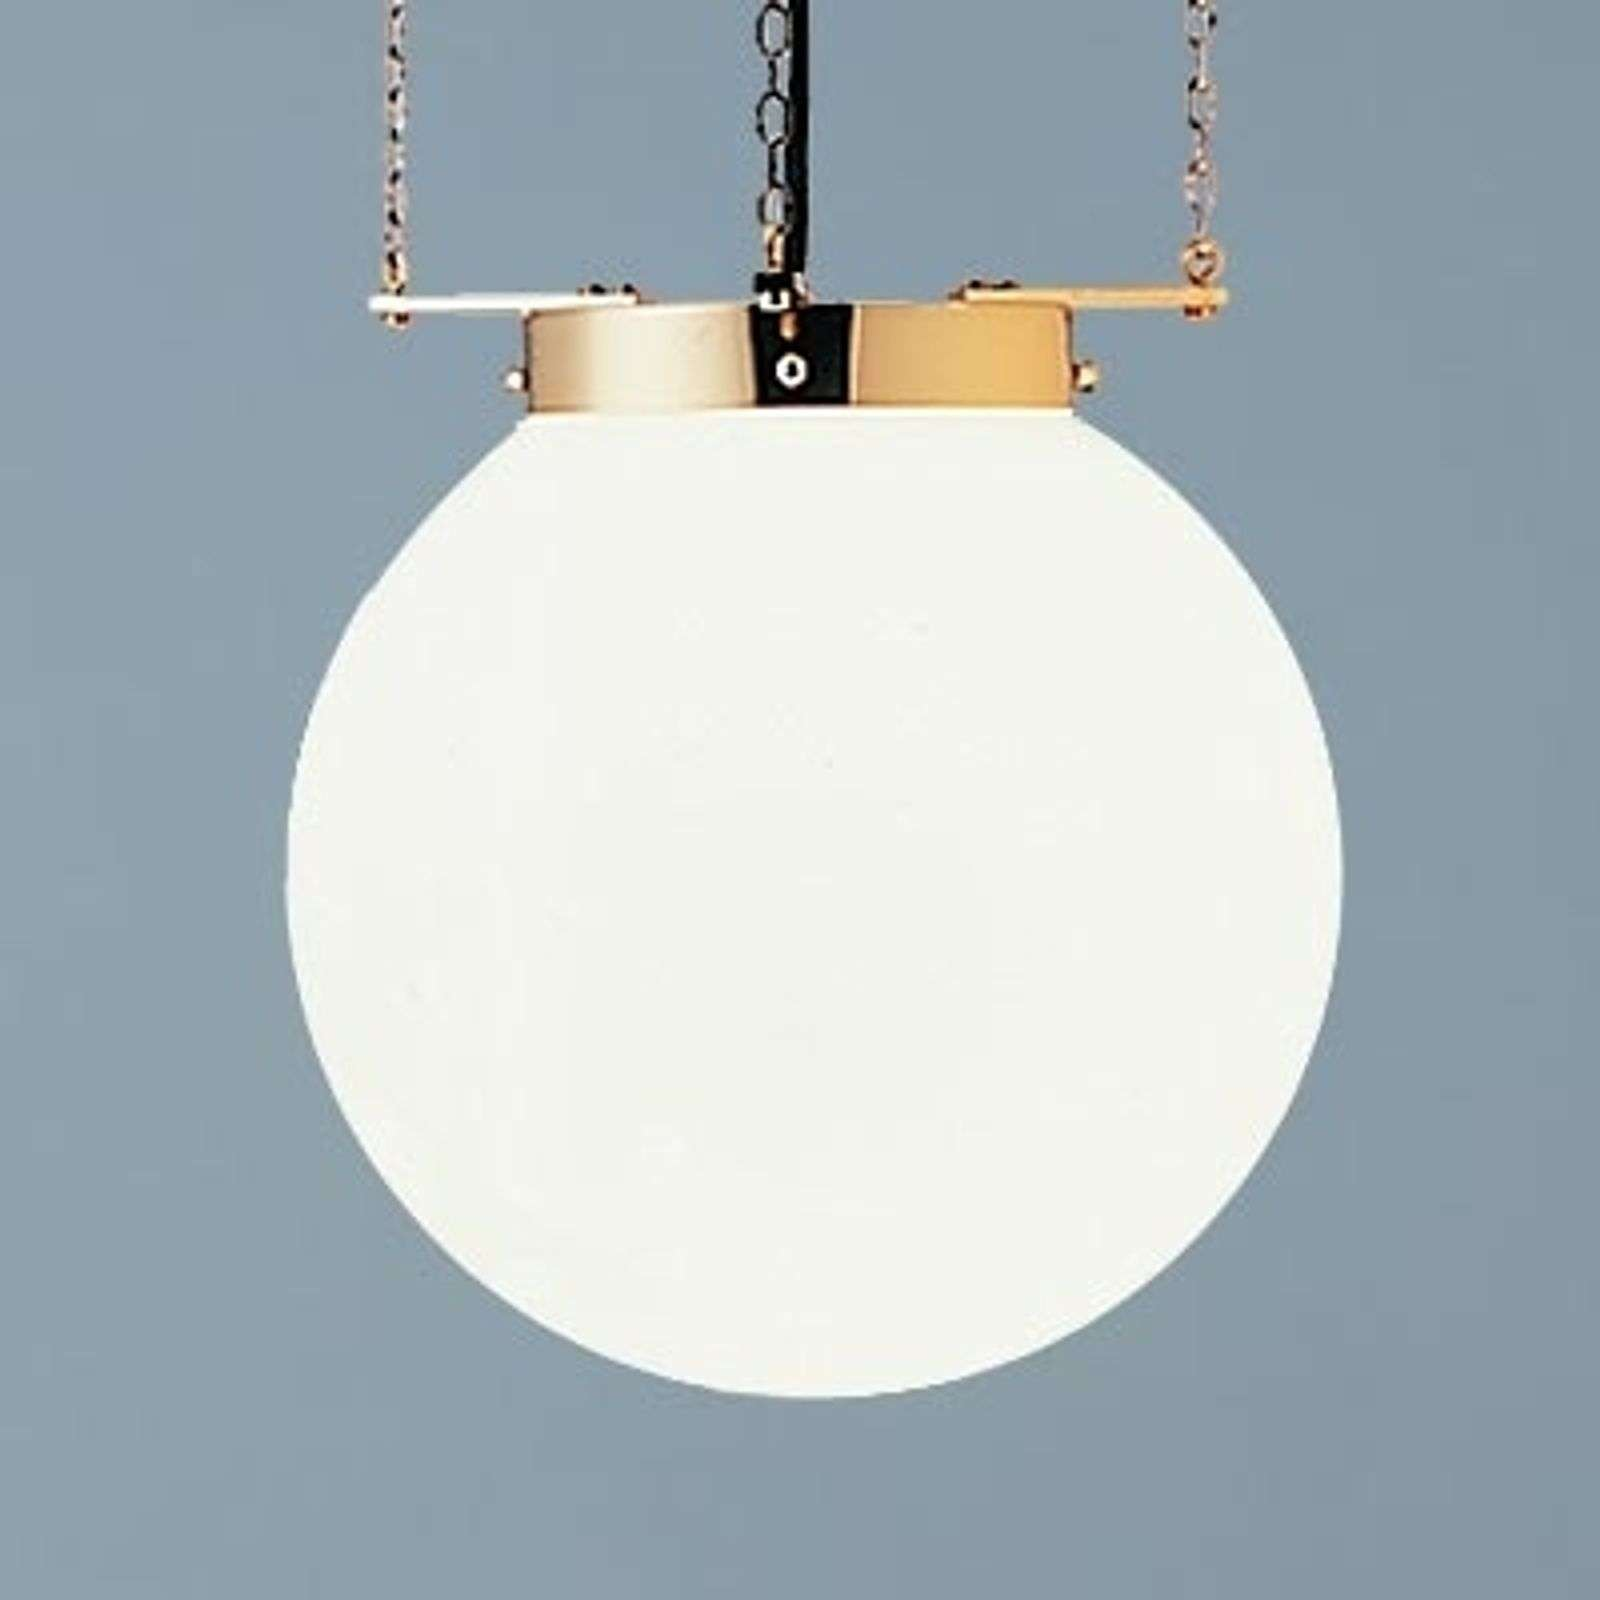 Suspension laiton style Bauhaus 35 cm